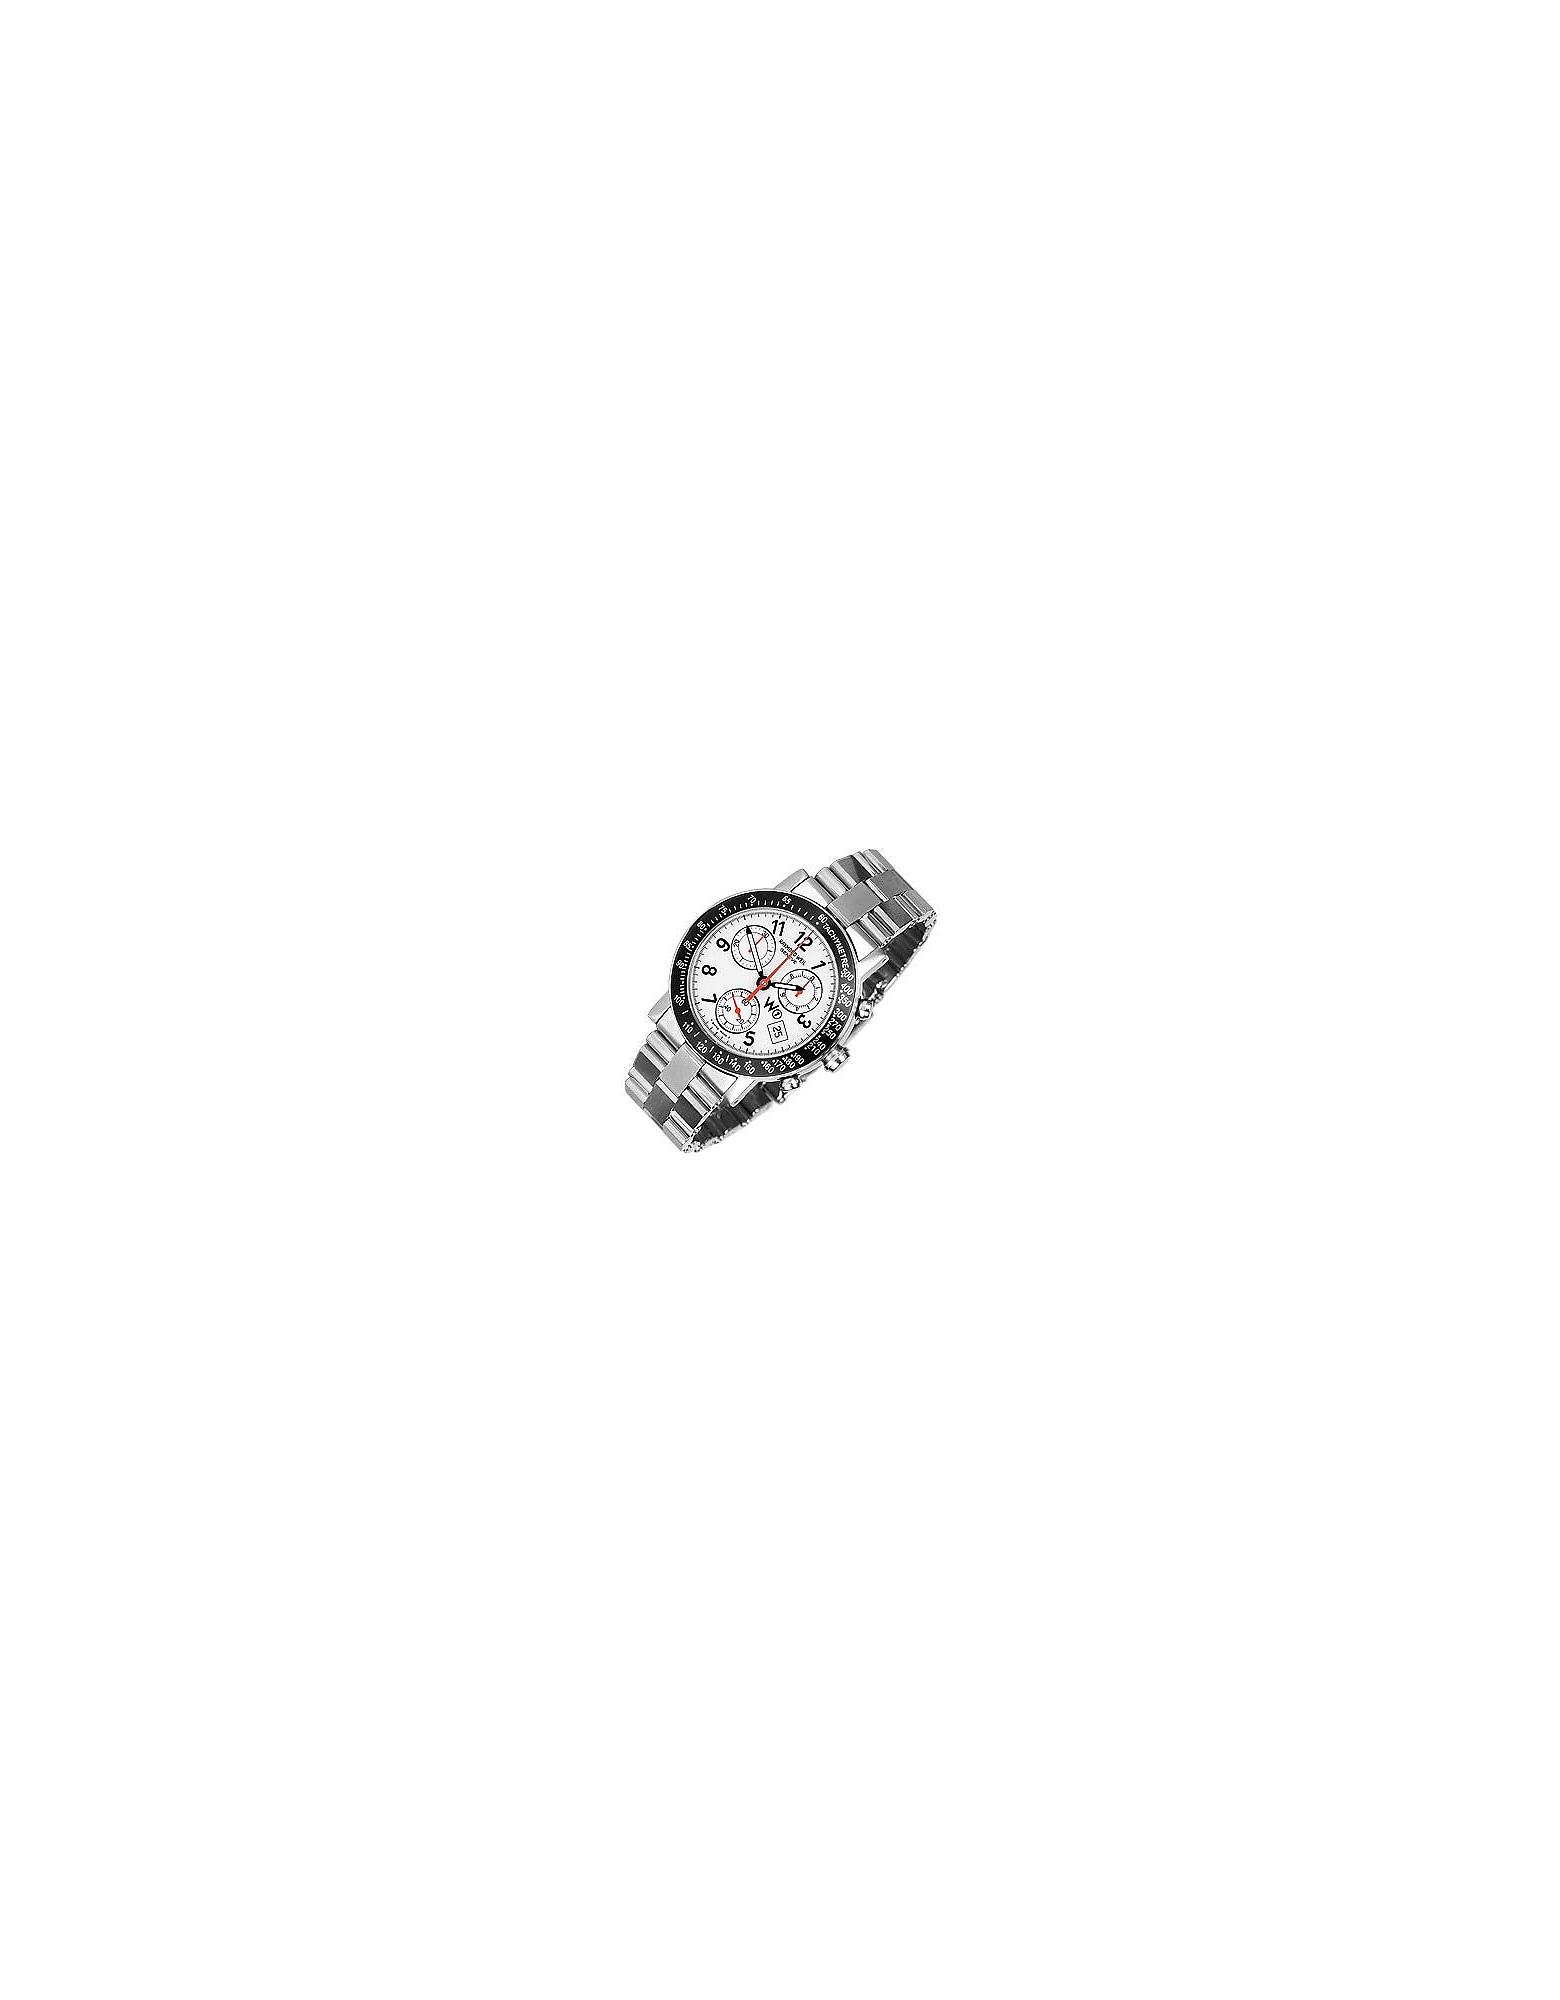 Raymond Weil Men's Watches, W1 - White Stainless Steel Chronograph Watch w/ Tachymetre